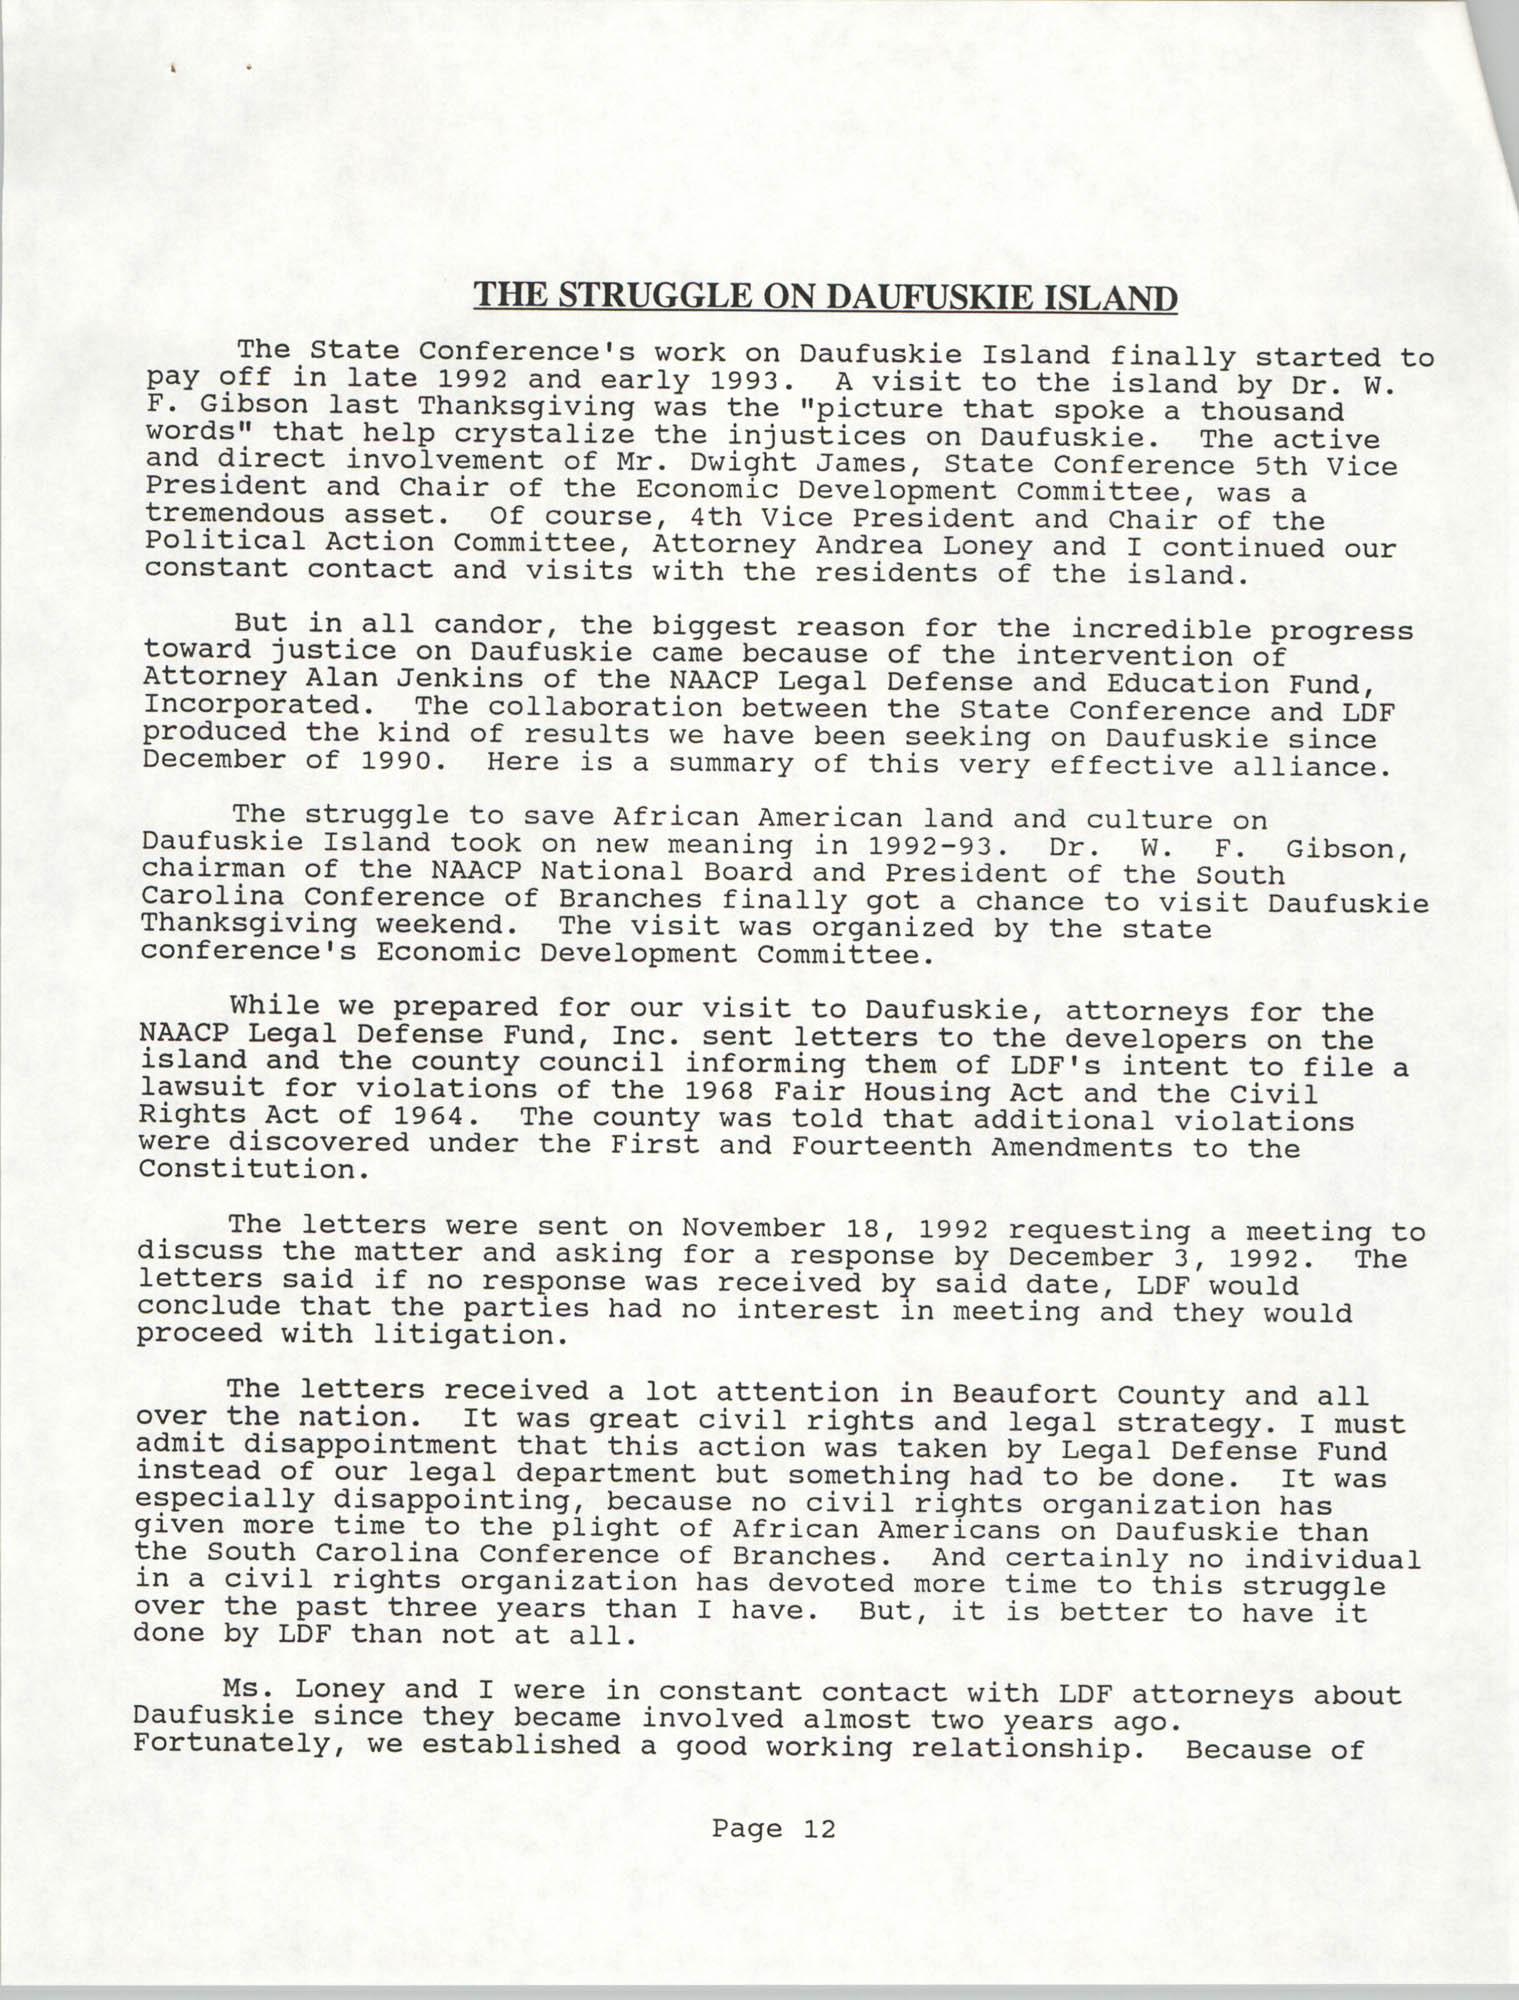 South Carolina Conference of Branches of the NAACP, Annual Report, October 9, 1993, Page 12